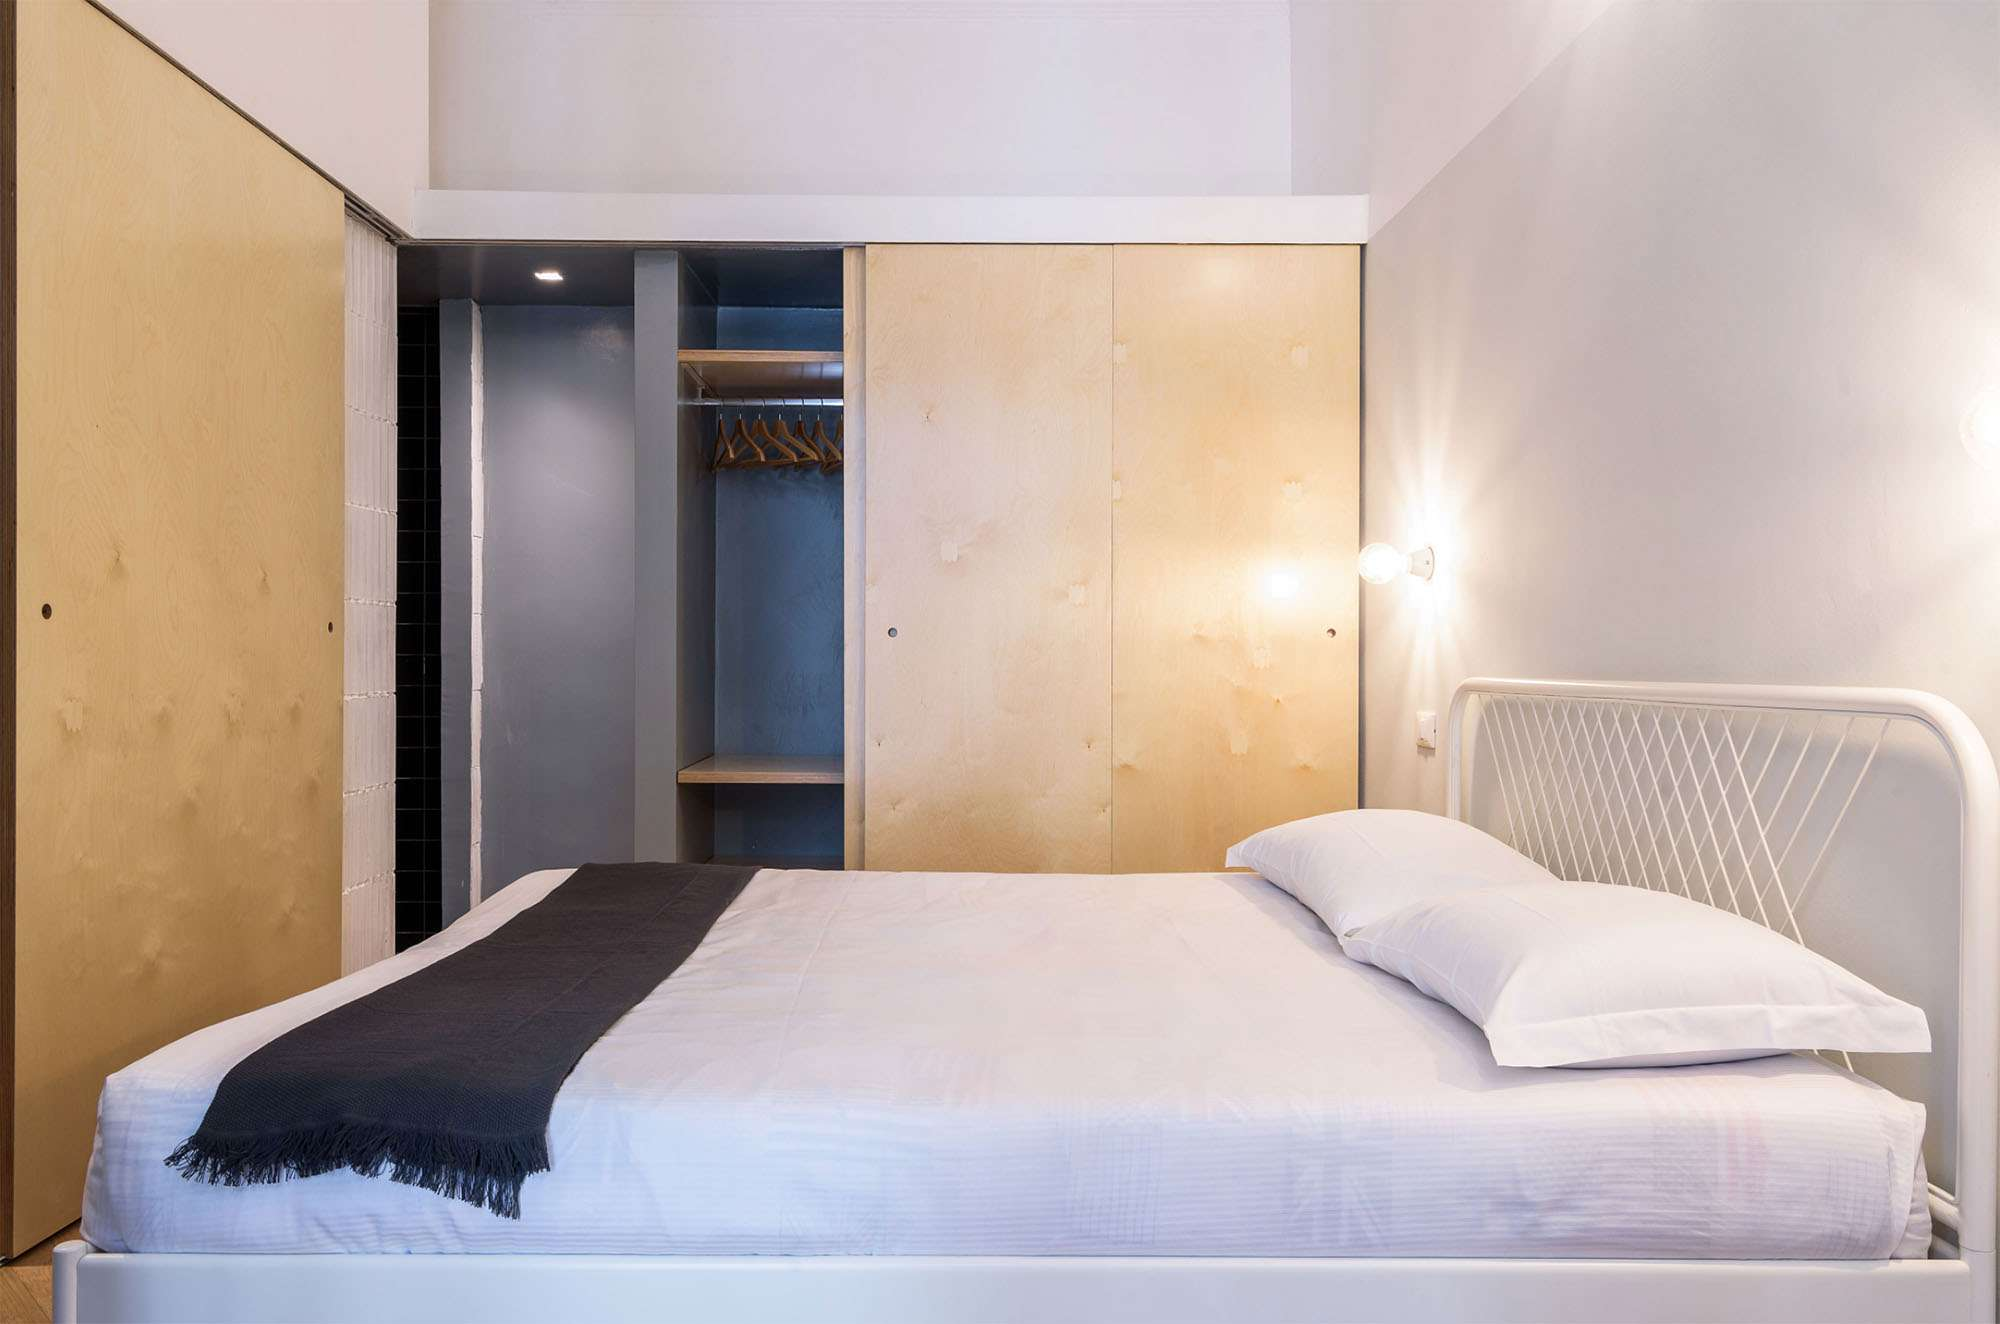 House In Constant Transition small apartment renovation ATOMAA bedroom closet